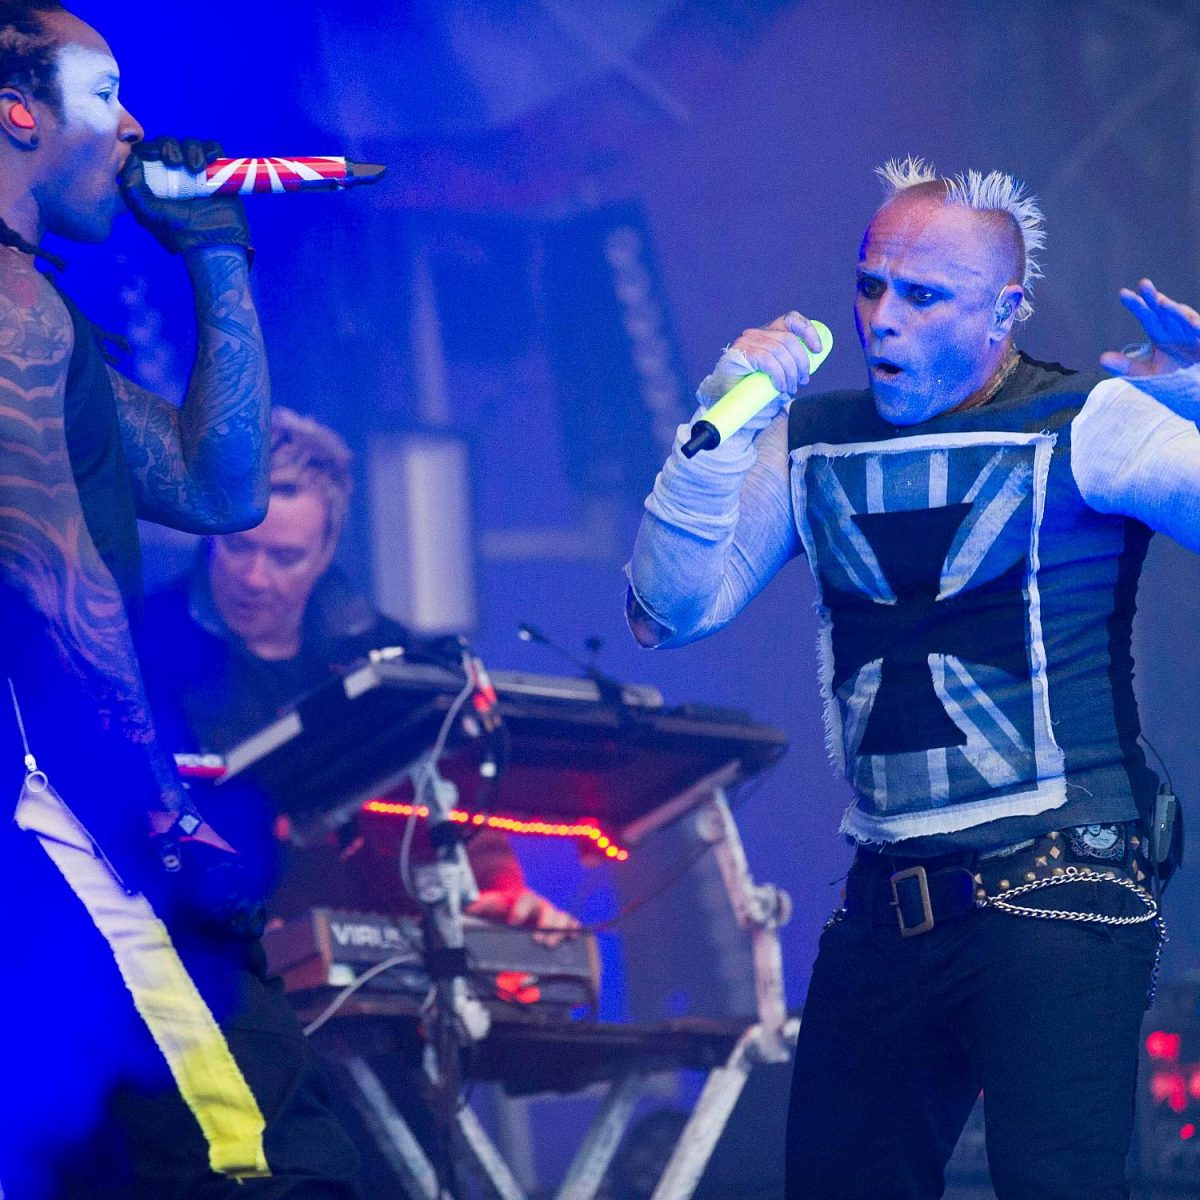 The Prodigy Preview New Album 'No Tourists' With Urgent 'Need Some1'